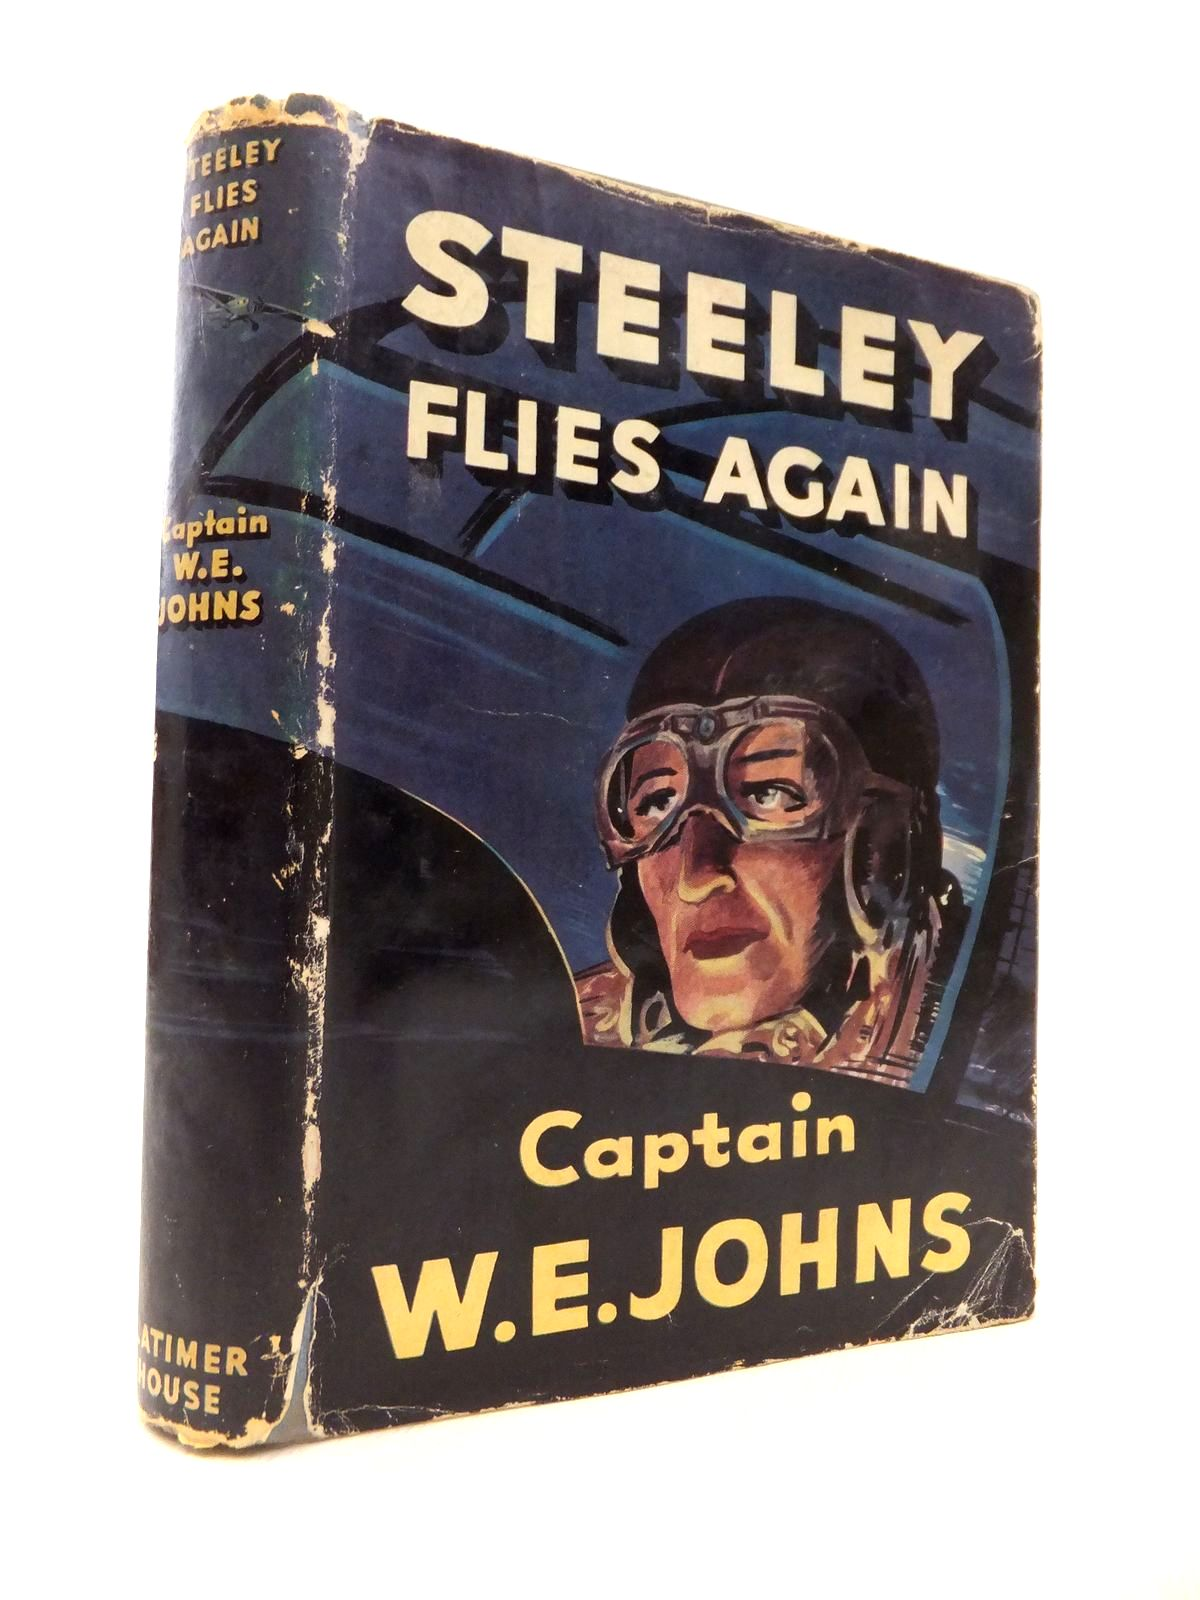 Photo of STEELEY FLIES AGAIN written by Johns, W.E. published by Latimer House Limited (STOCK CODE: 1813863)  for sale by Stella & Rose's Books